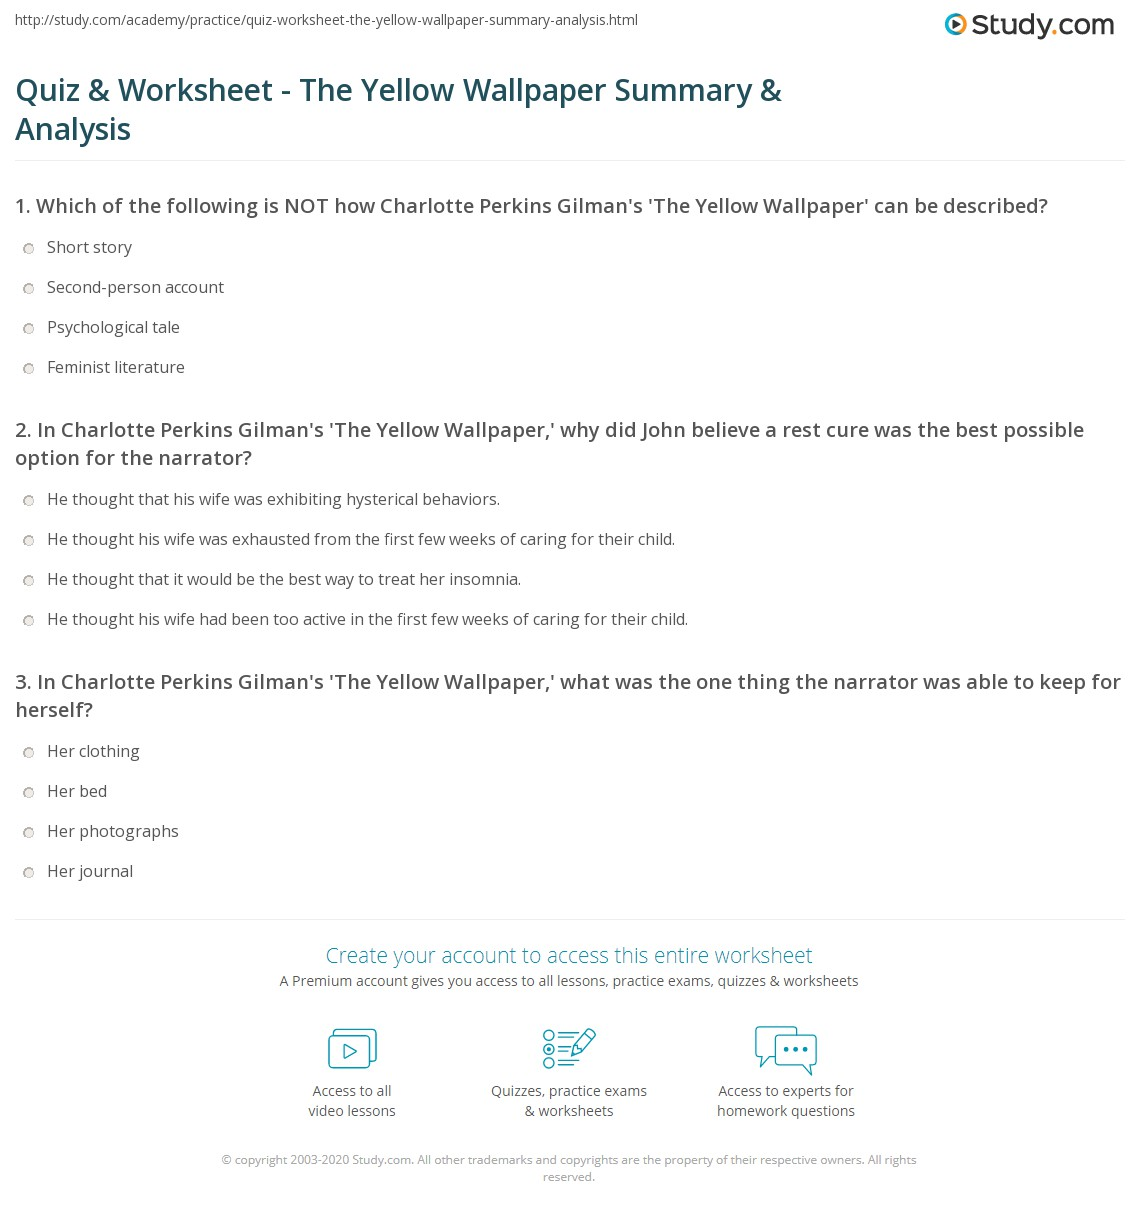 https://study.com/academy/practice/quiz-worksheet-the-yellow-wallpaper-summary-analysis.jpg